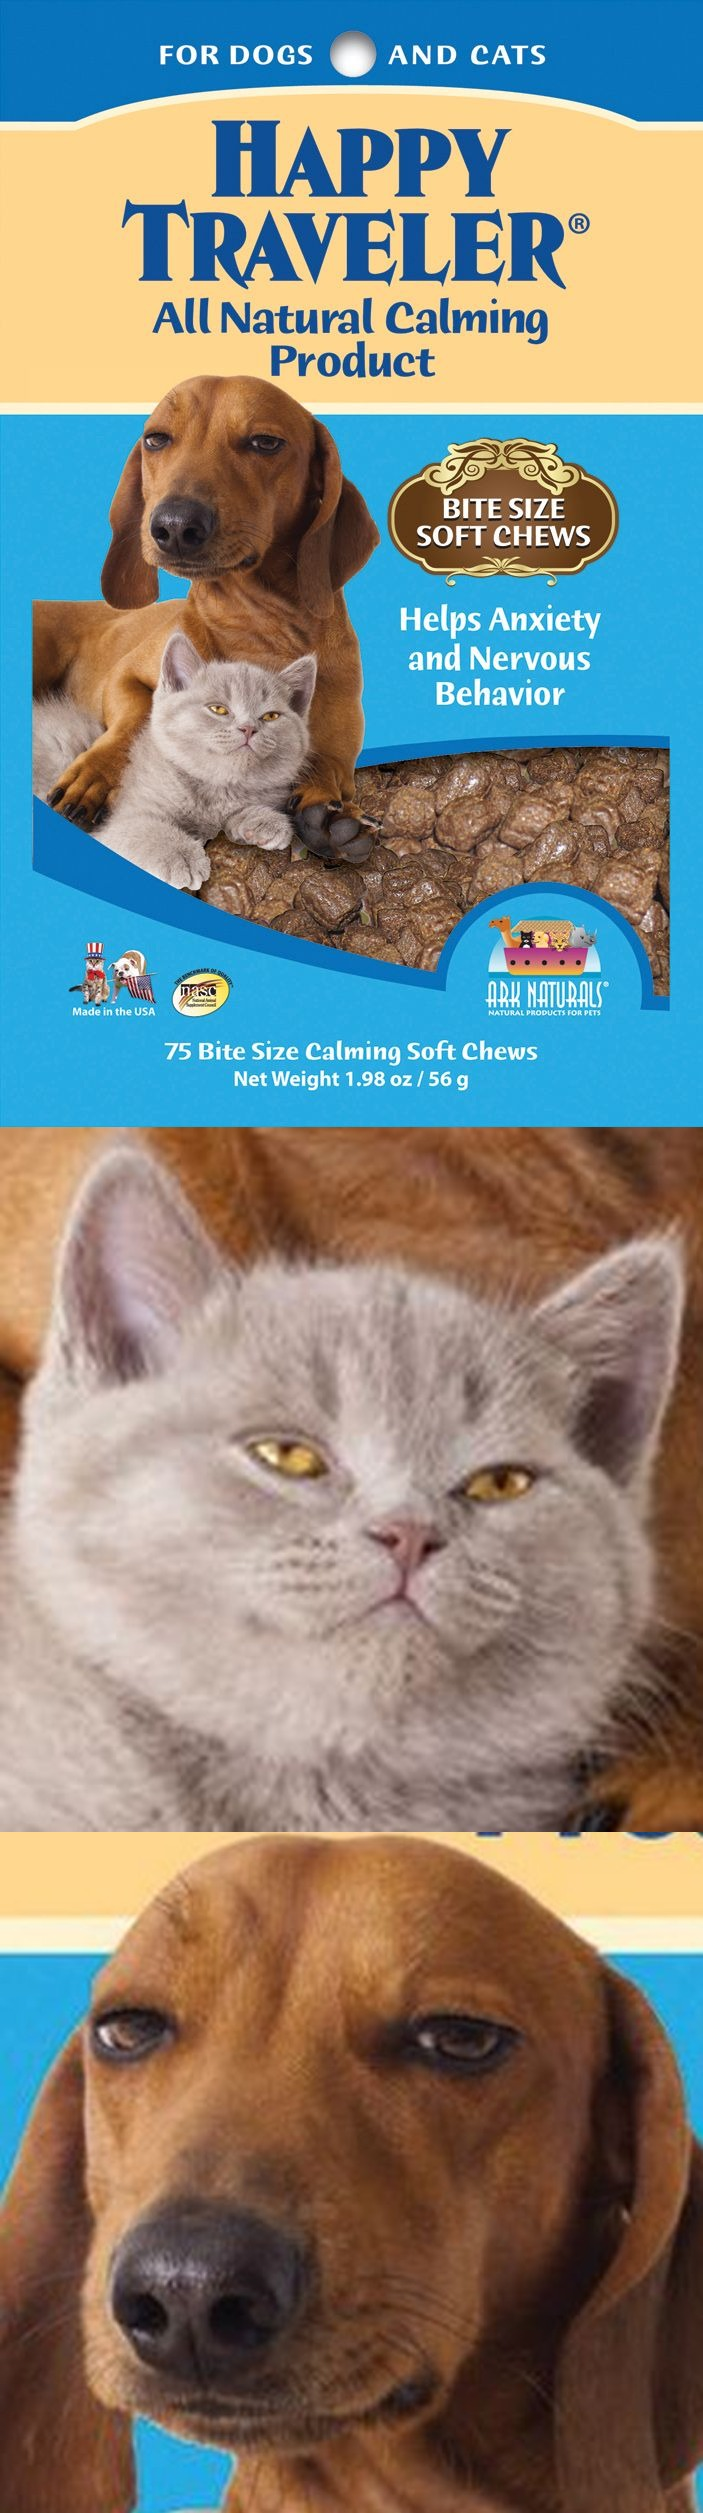 All natural calming product for dogs and cats looks like it works really, really good.